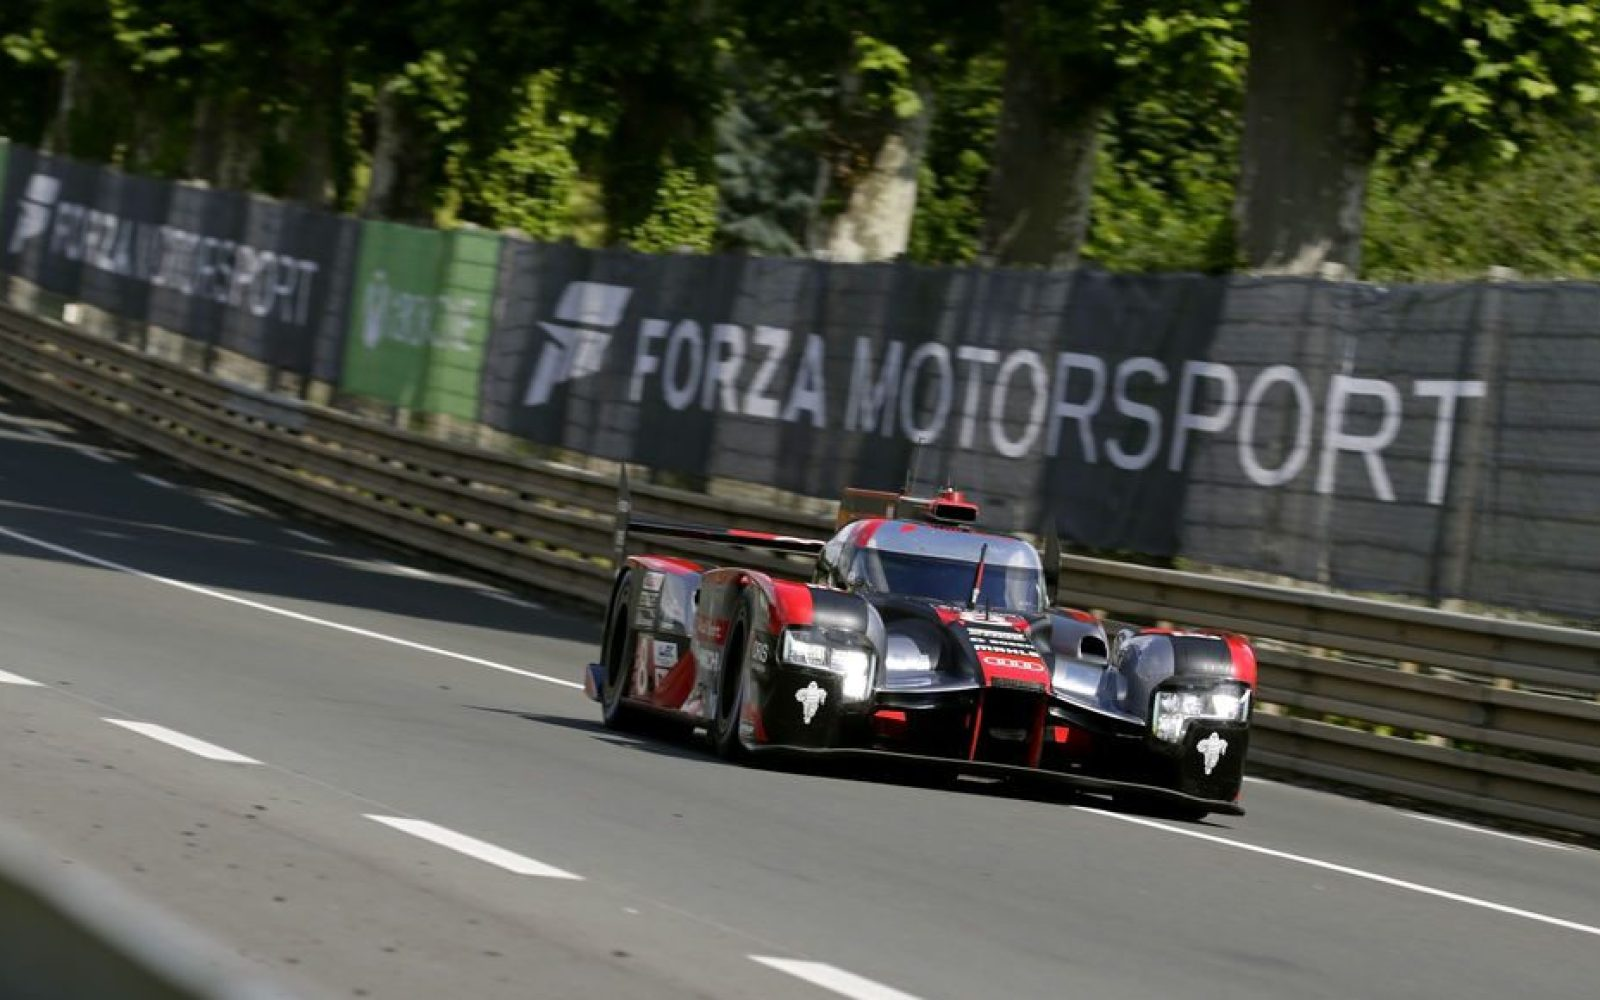 Audi Quitting Le Mans To Focus On All Electric Formula E